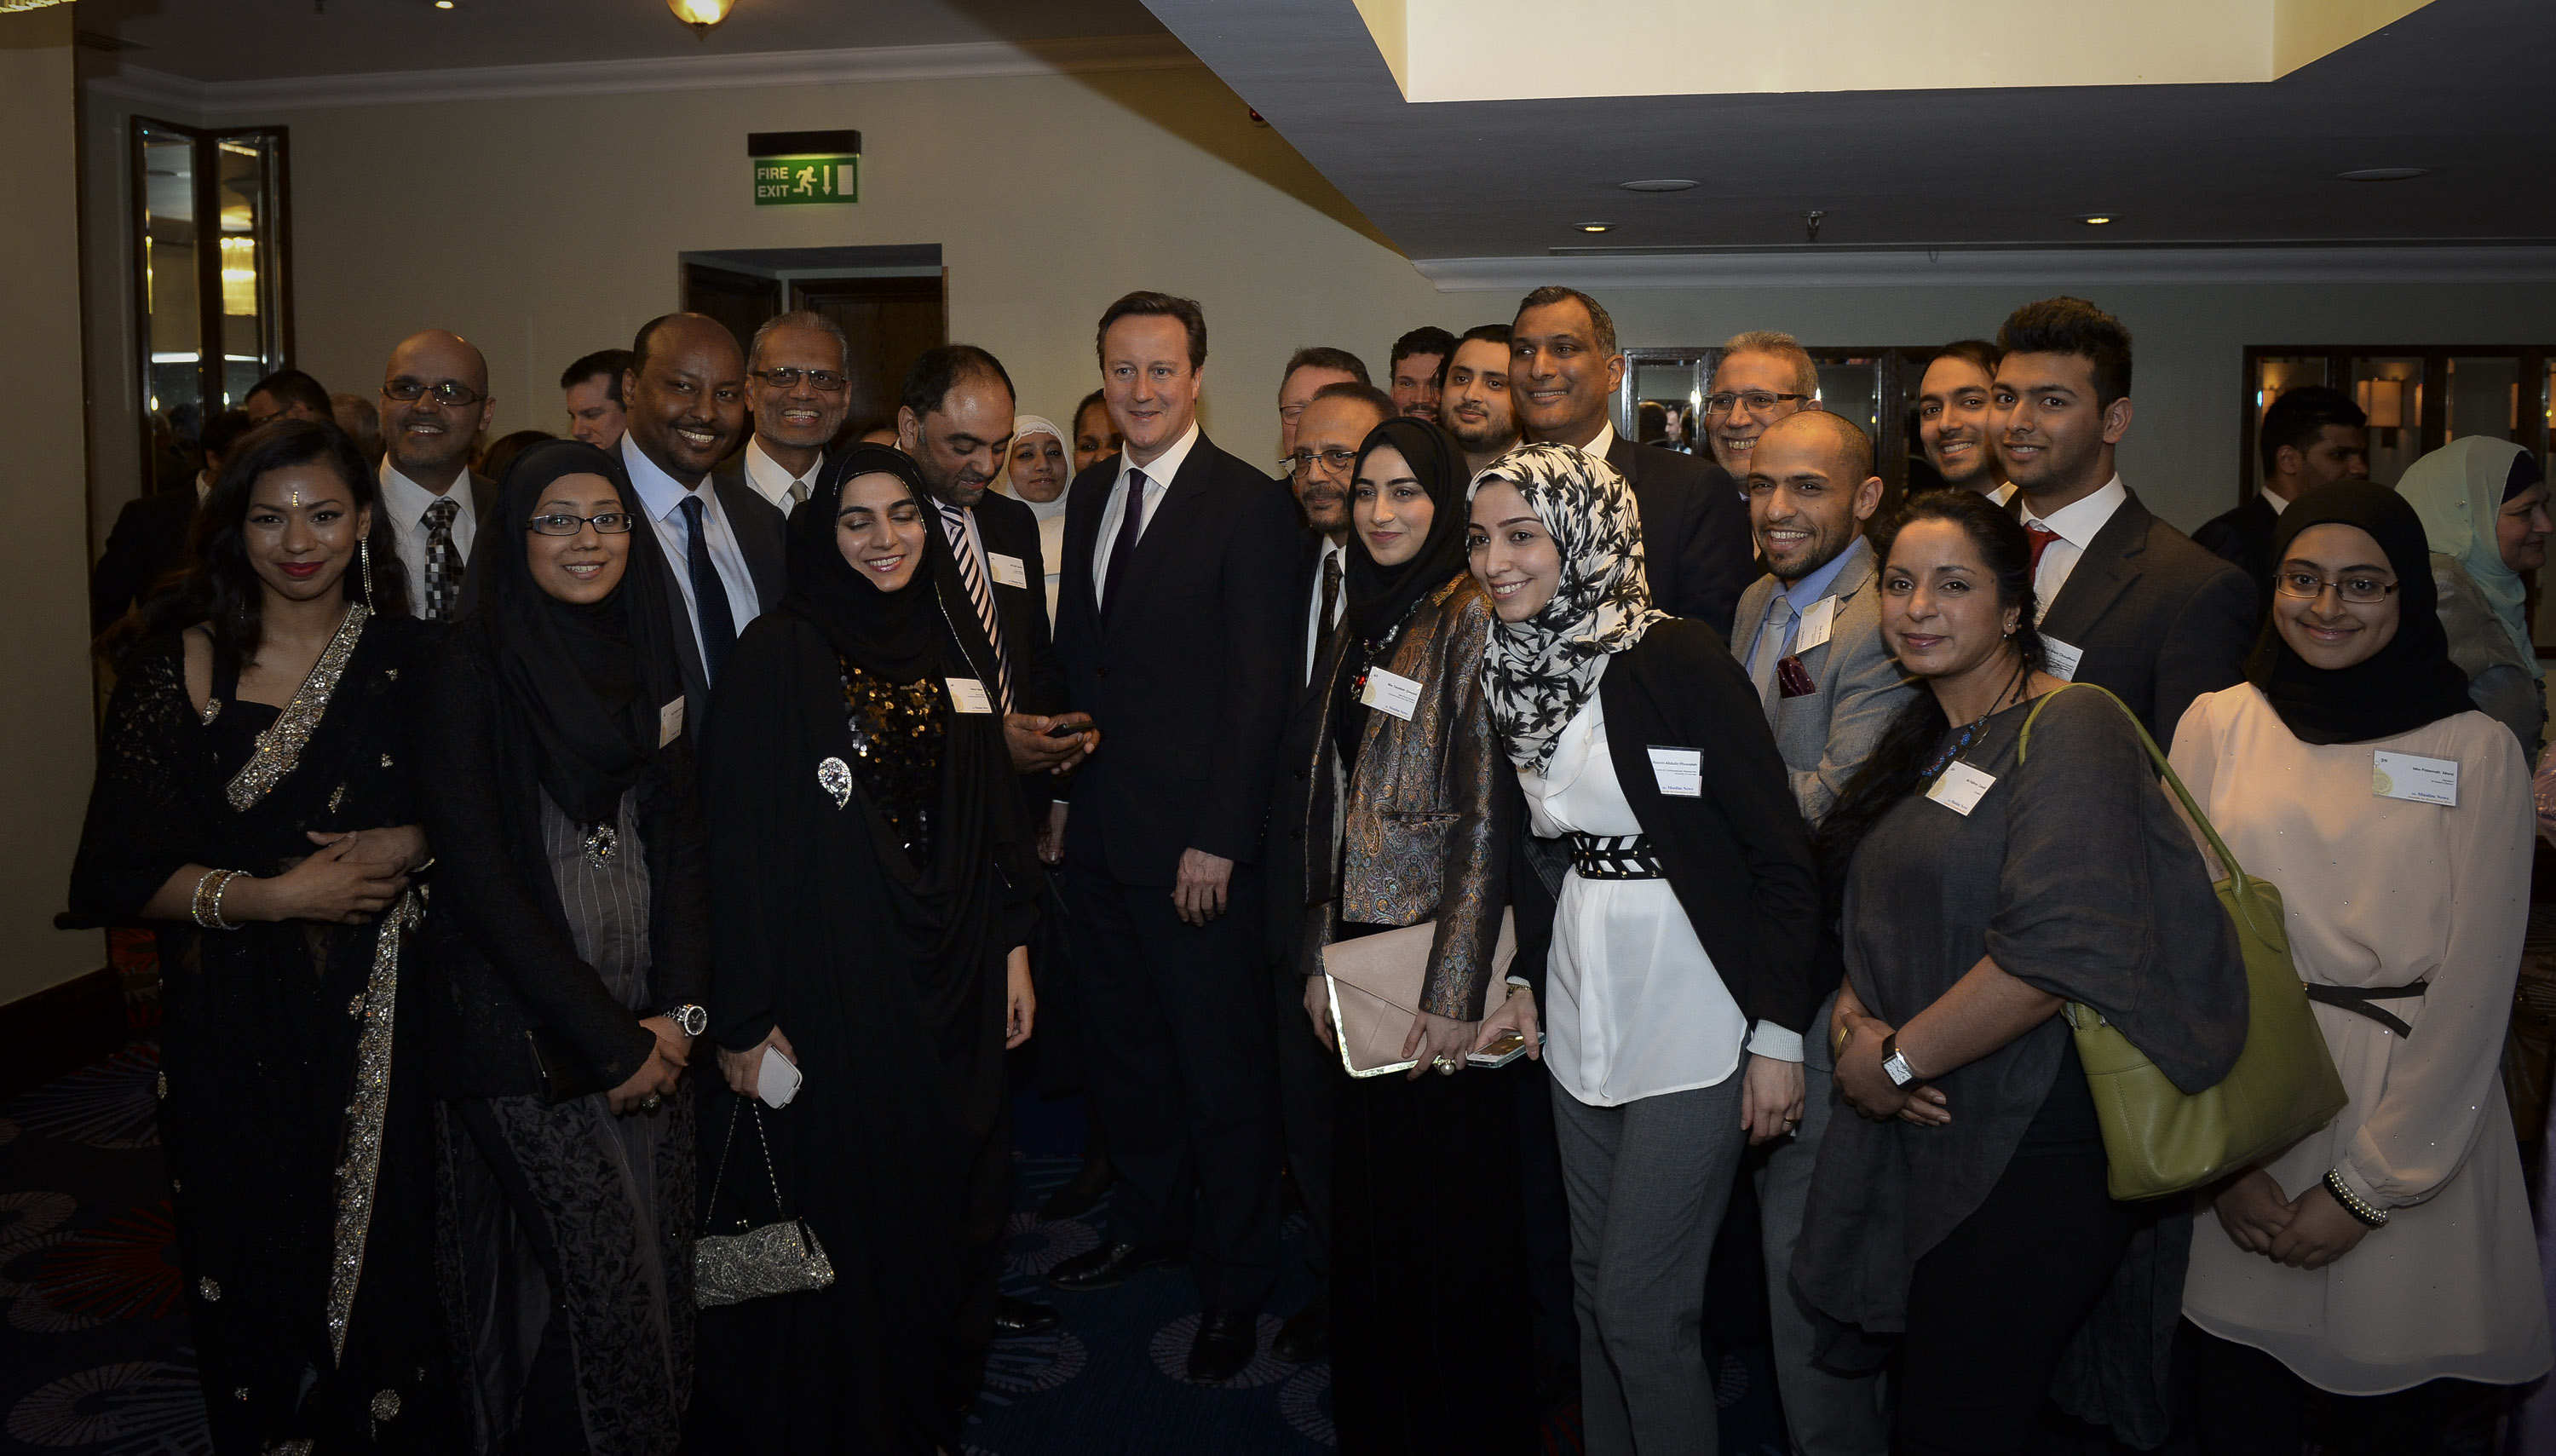 The Prime Minister David Cameron attends the Muslim News Awards Ceremony held at the Grovesnor Hotel Park Lane- File Pic